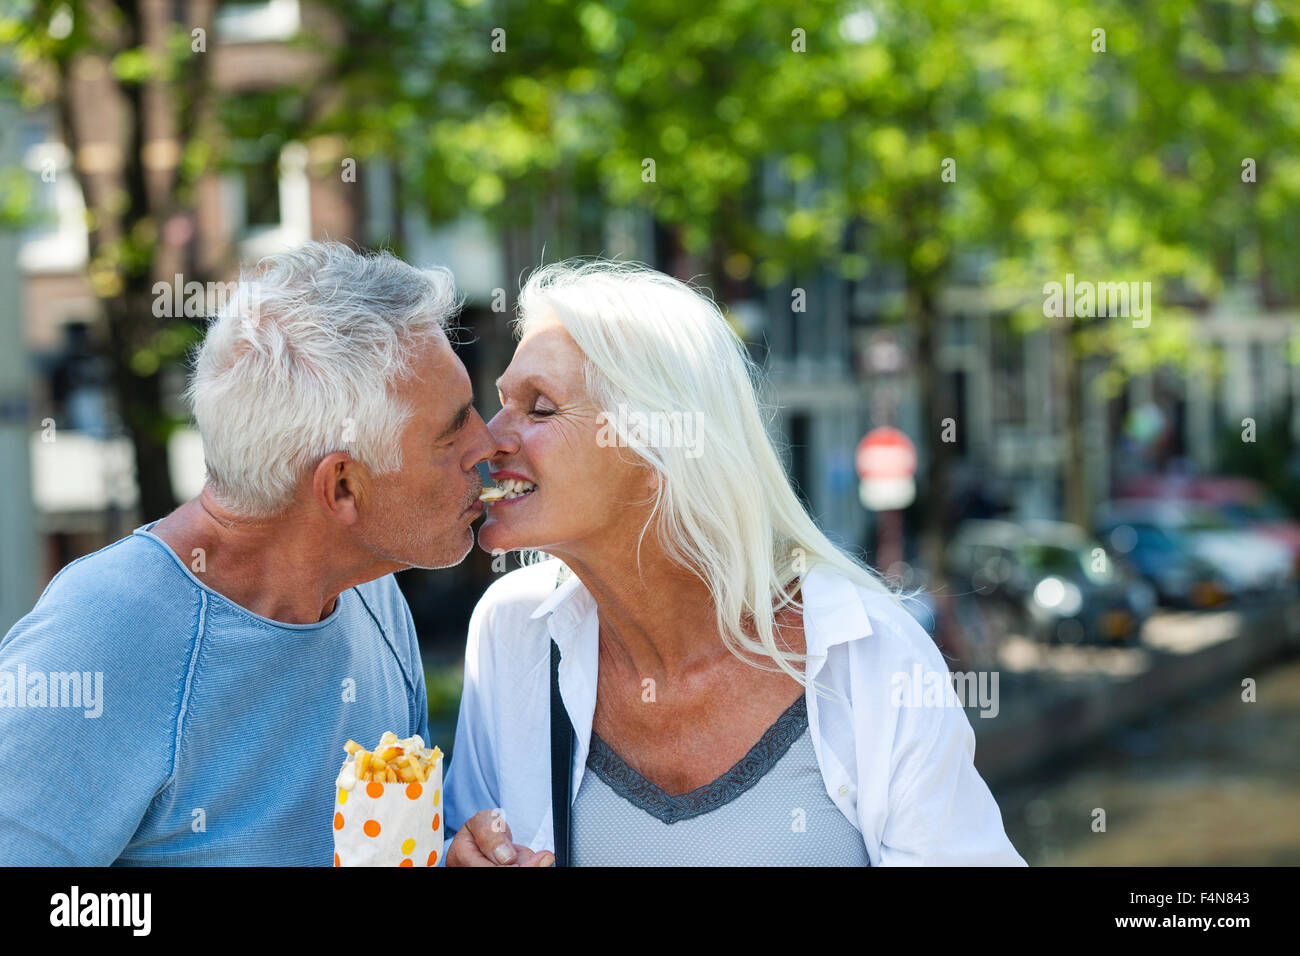 Netherlands, Amsterdam, happy senior couple sharing French Fries - Stock Image